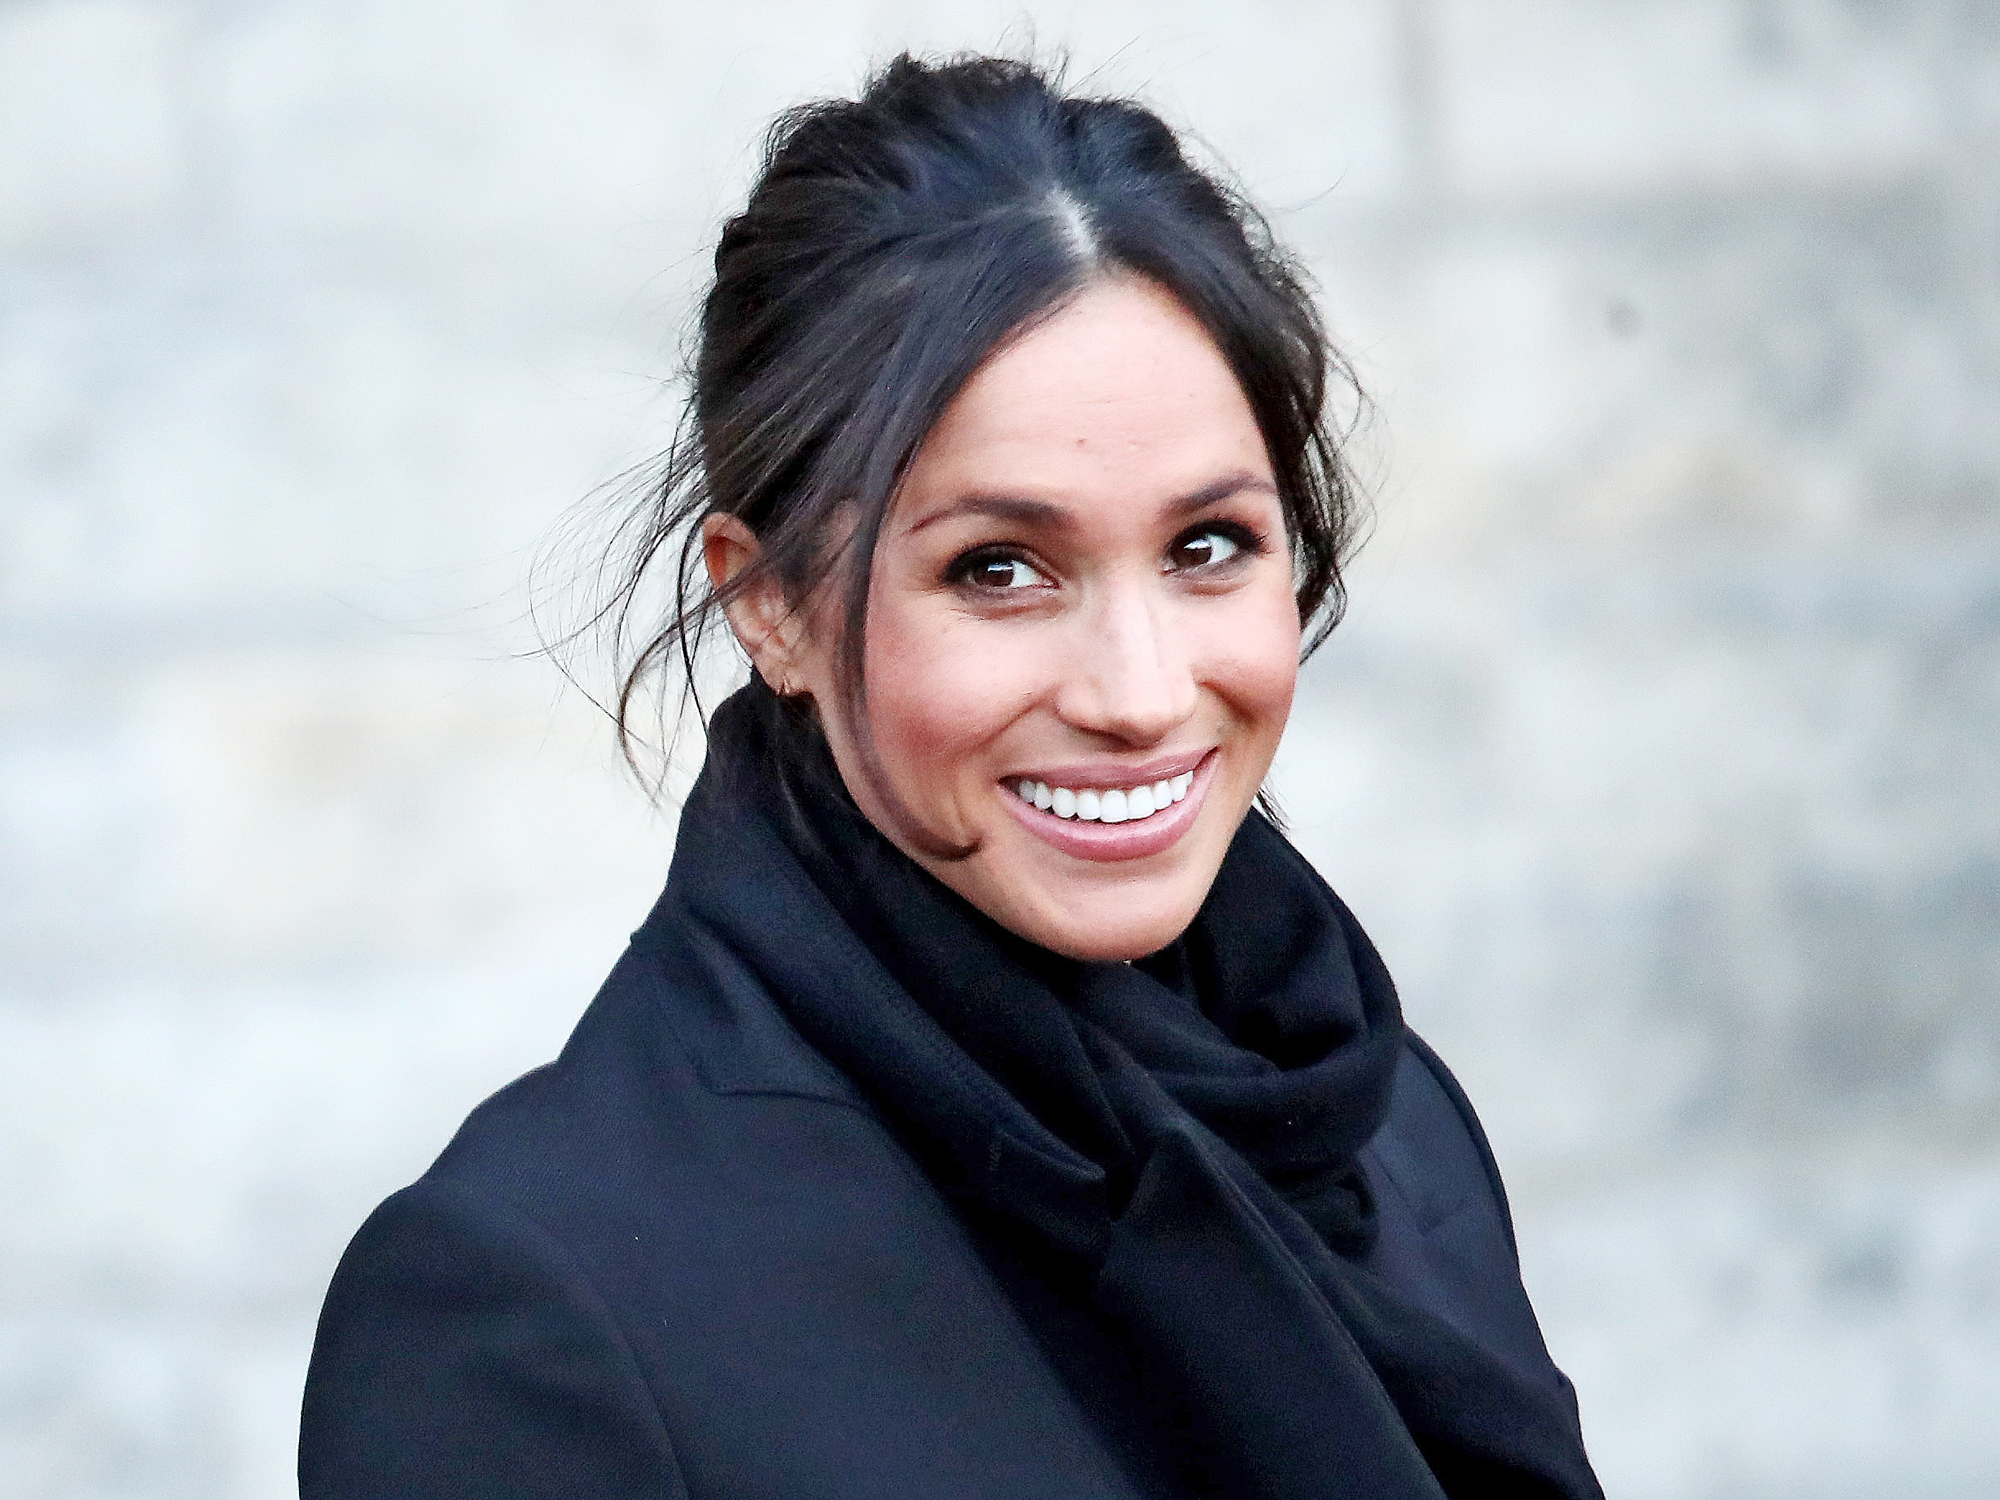 Watch 8-Year-Old Meghan Markle Pretend To Be a Queen in a Home Movie